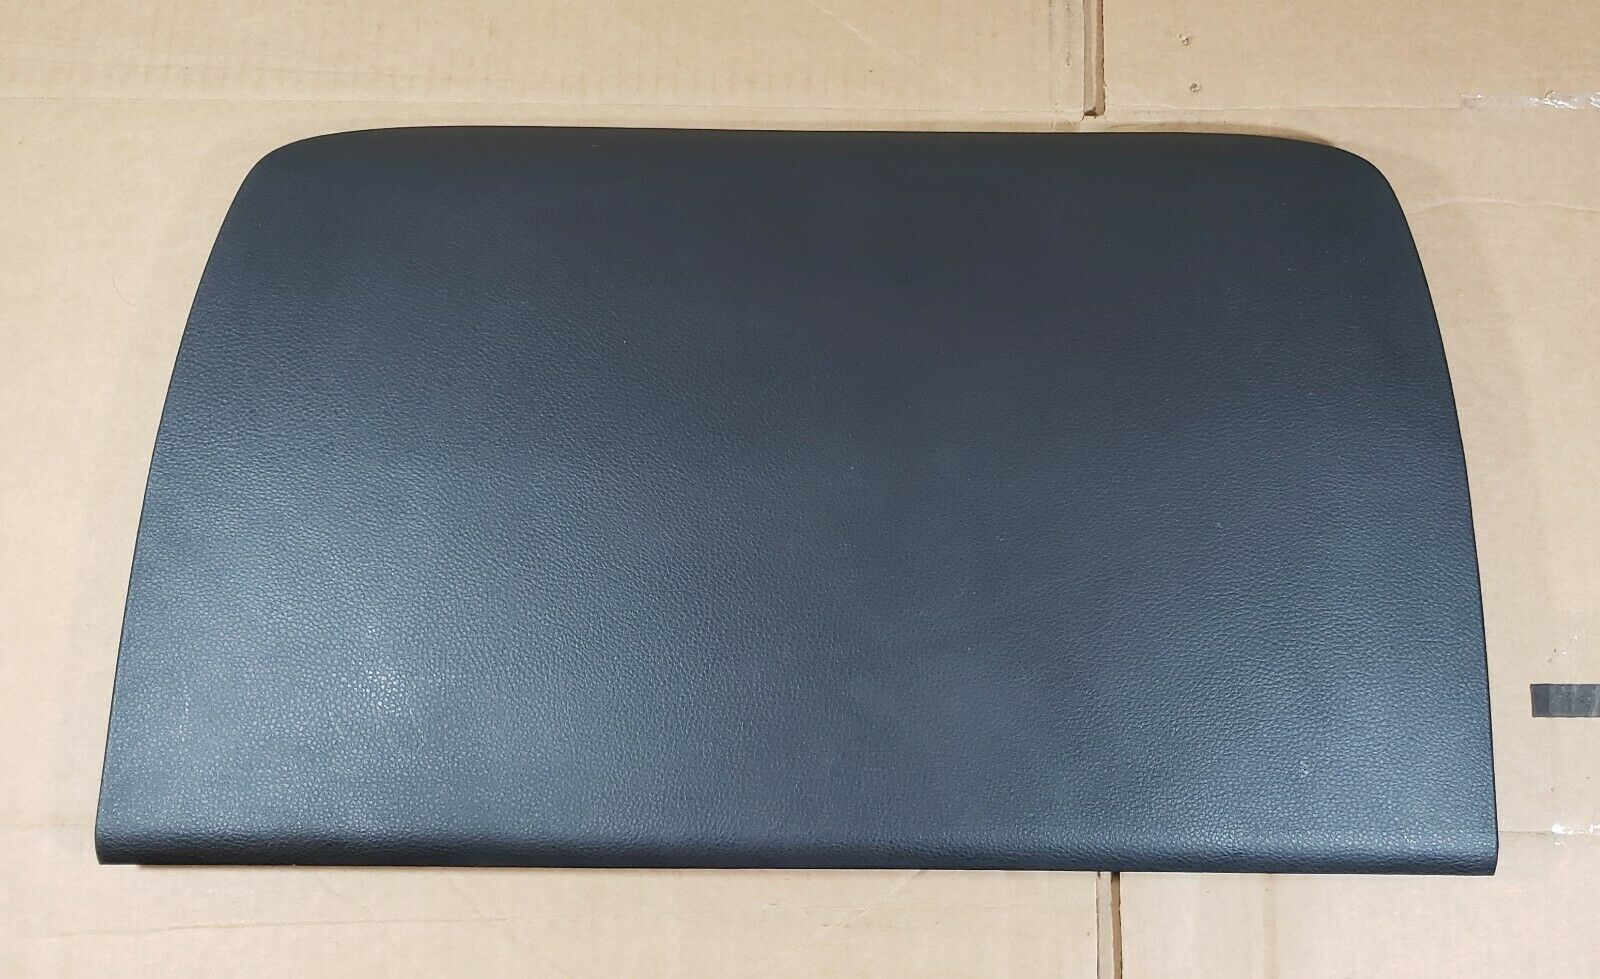 Nissan 350z Panel Cover Behind Seat Left 84996 OEM 2003 2004 2005 2006 2007 2008